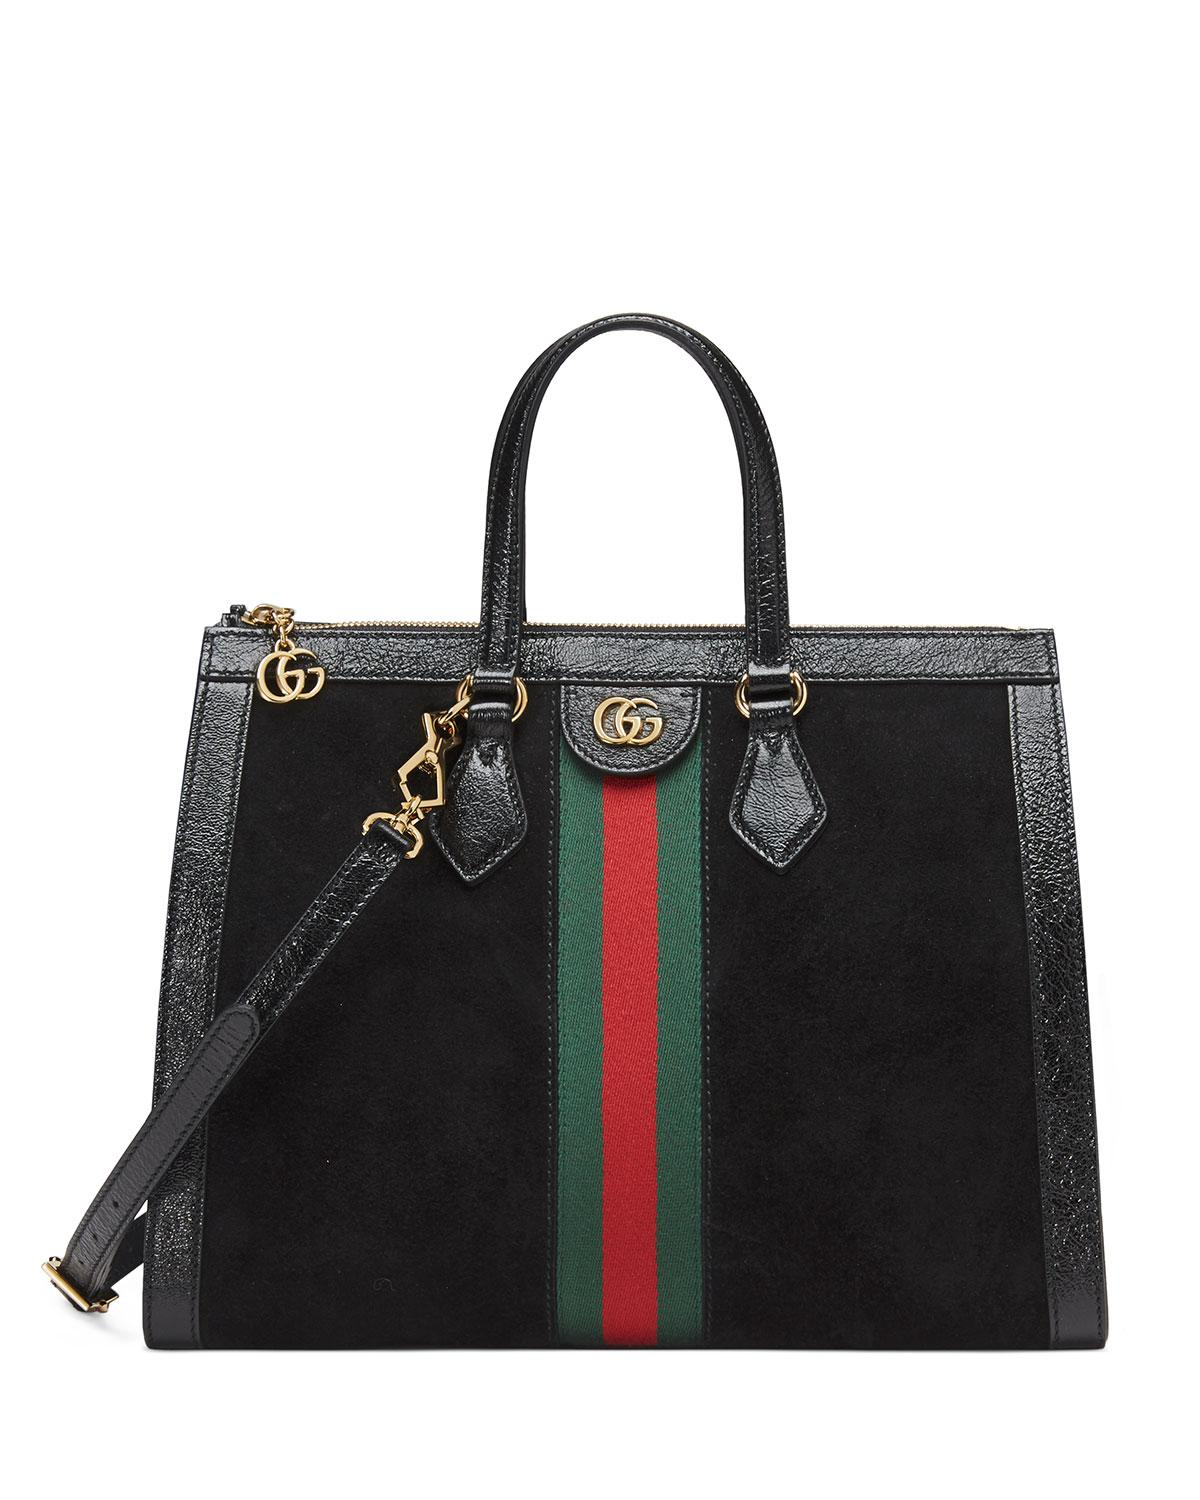 4596cf3914d1 Lyst - Gucci Ophidia Web Suede Top-handle Tote Bag in Black